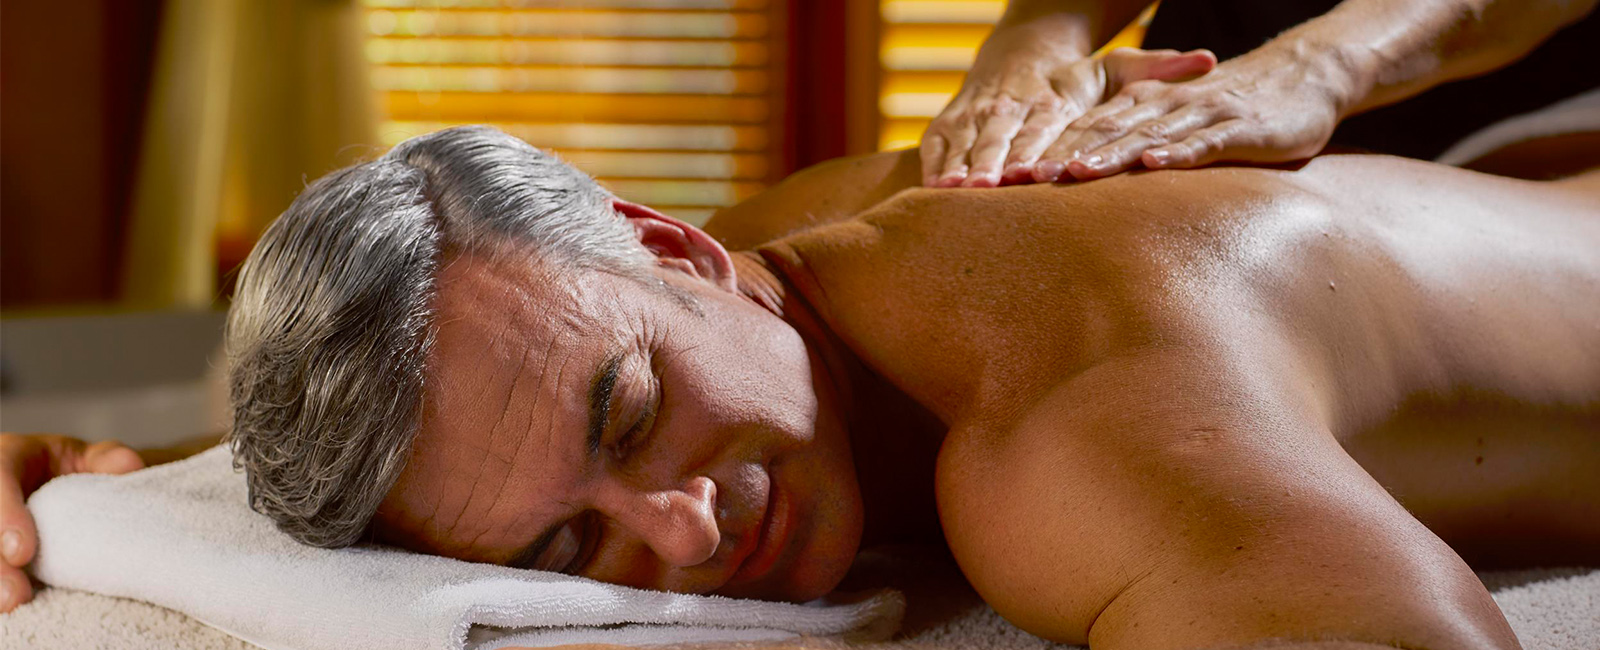 Fathers Need Massages, Too: Your Father's Day Gift Idea